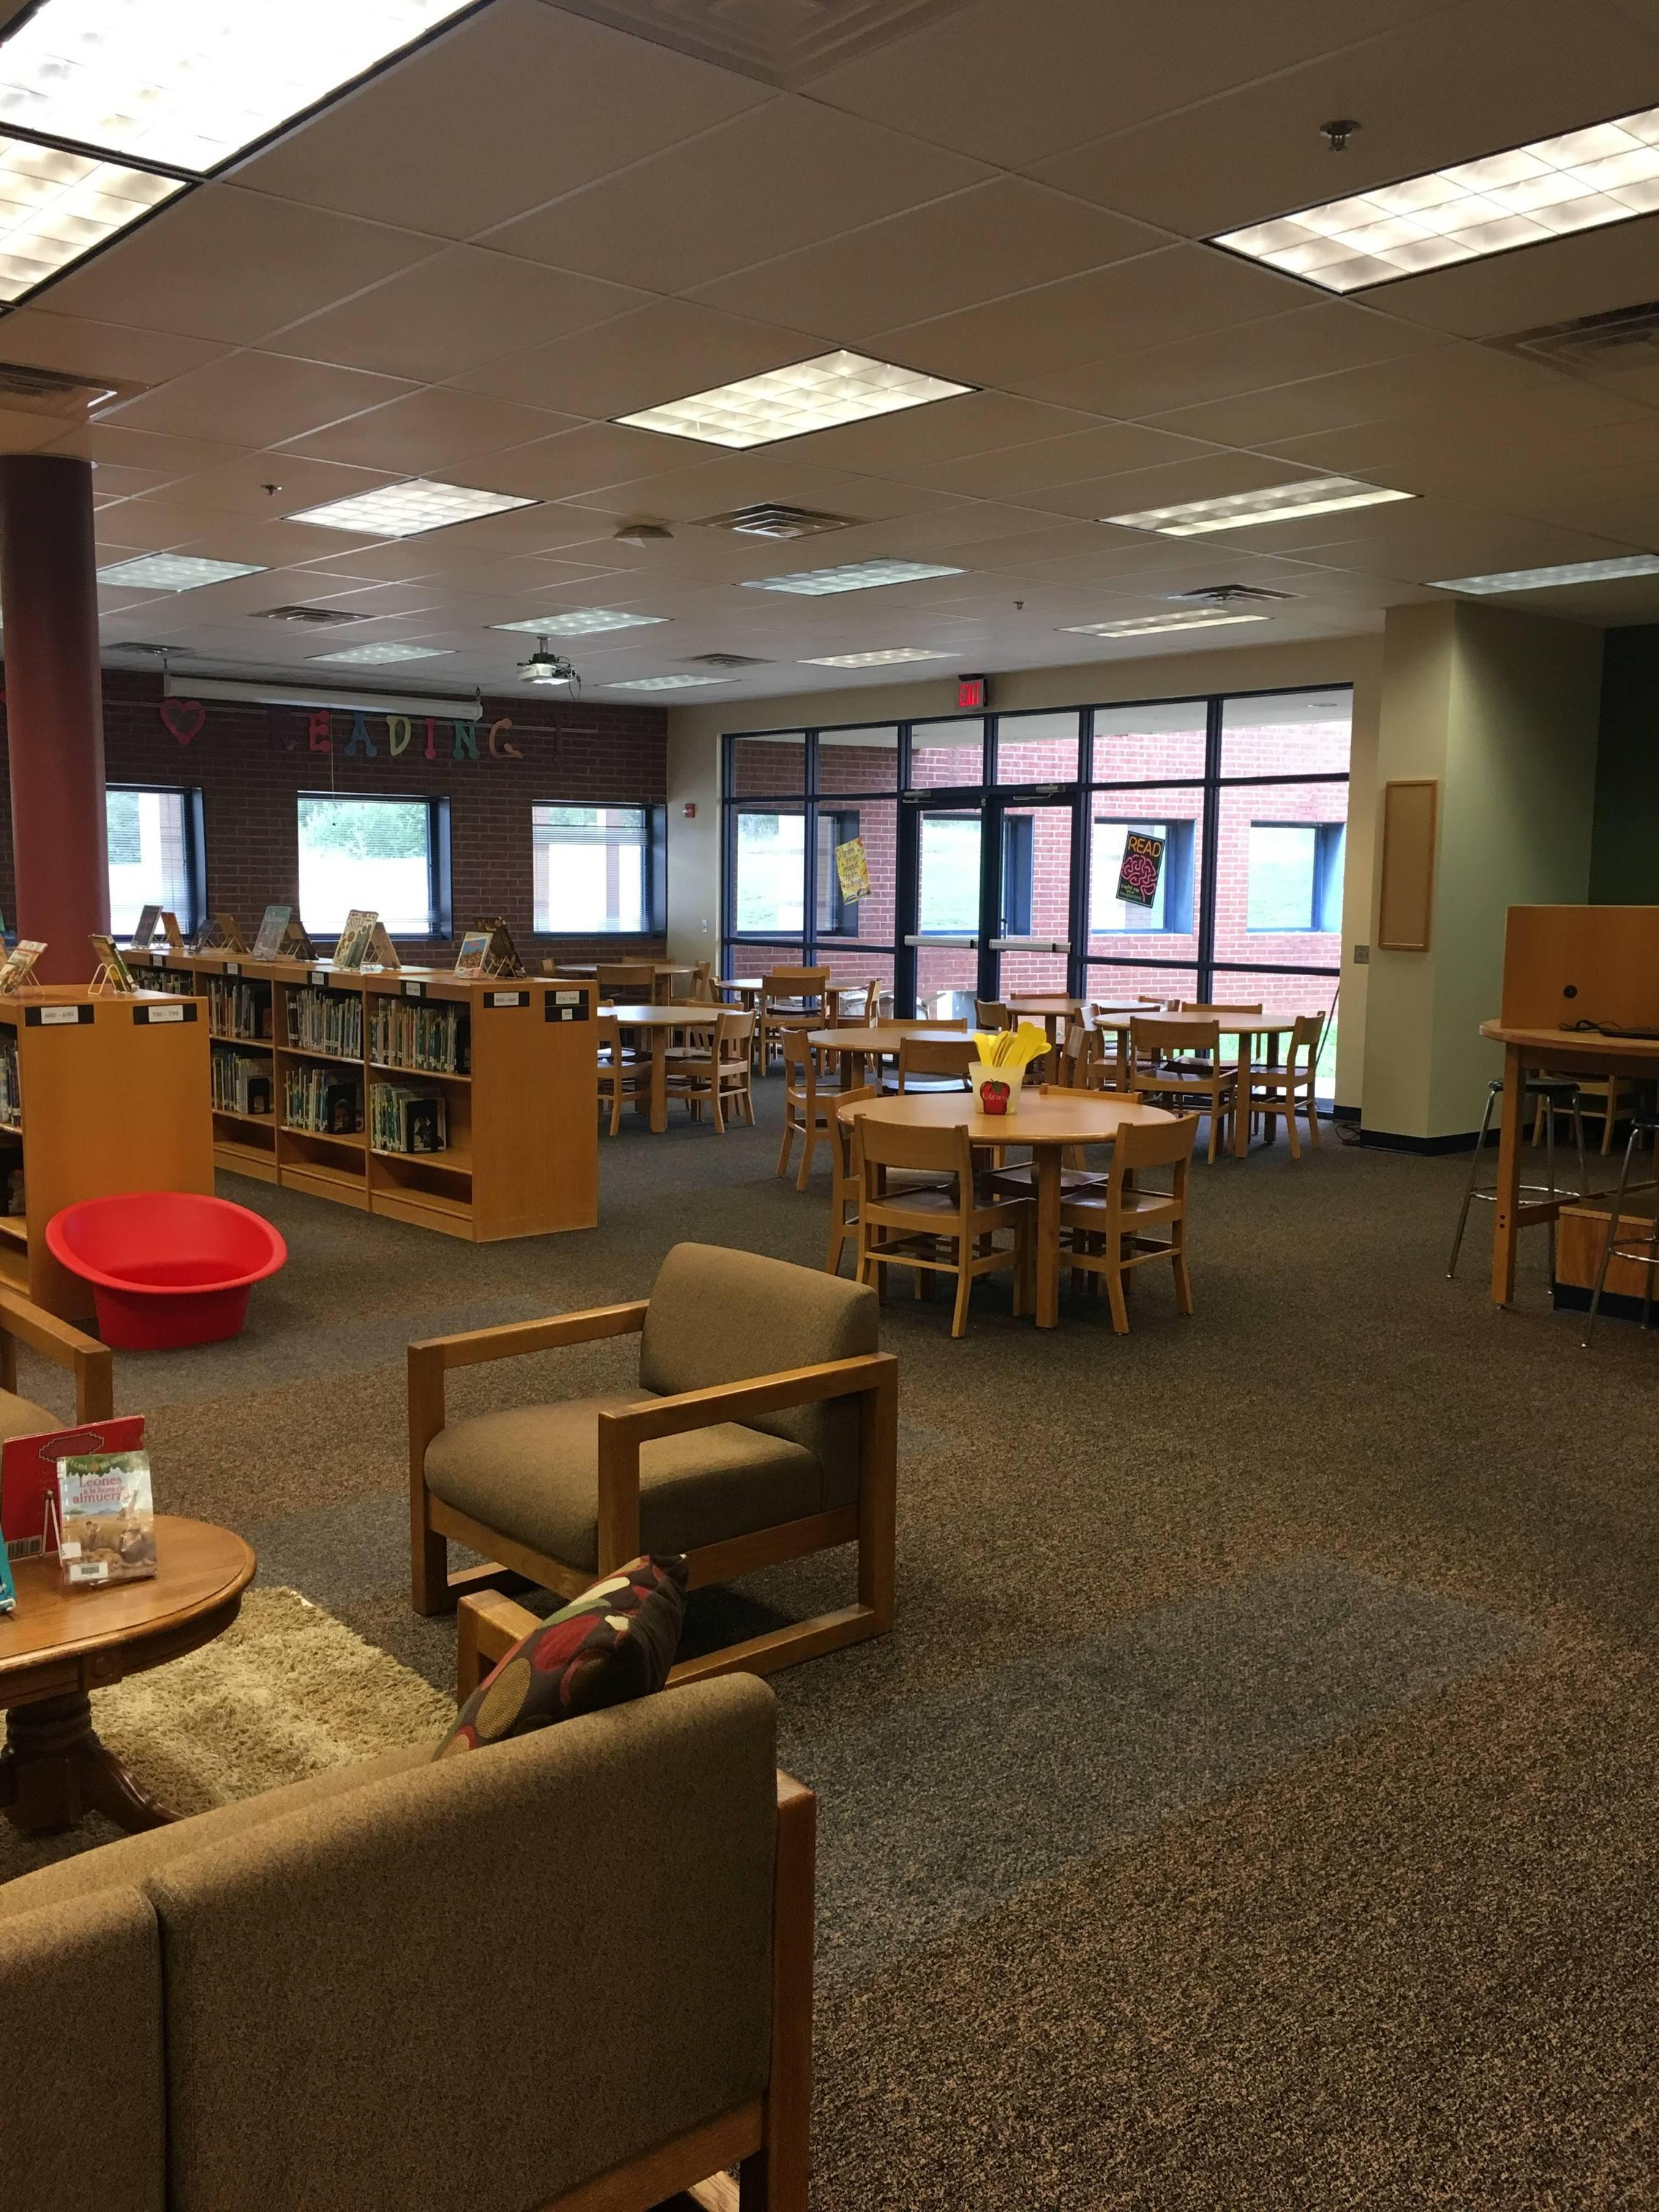 Library seating area